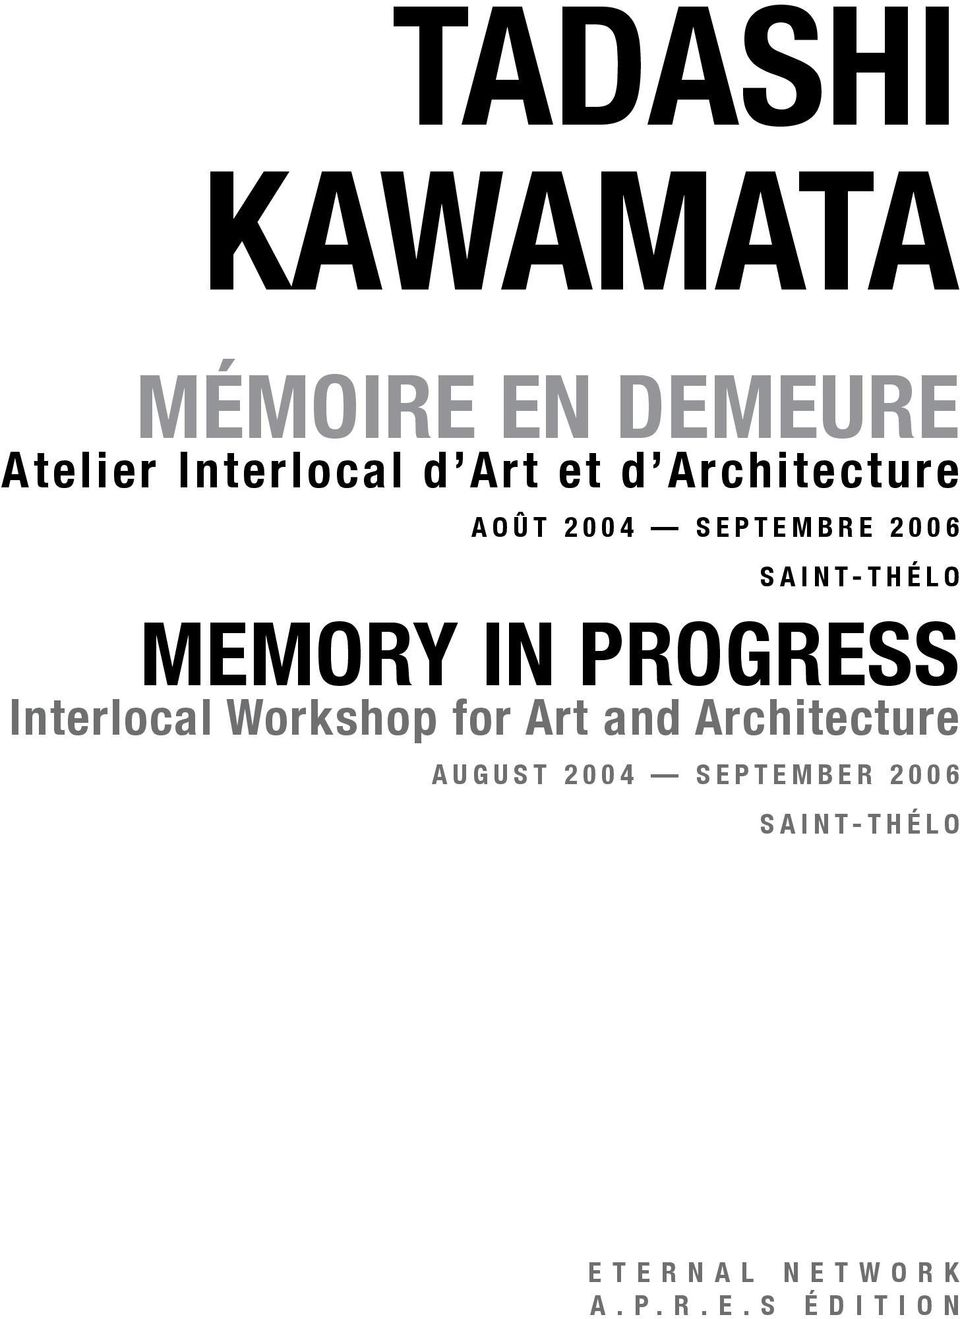 Interlocal Workshop for Art and Architecture A U G U S T 2 0 0 4 S E P T E M B E R